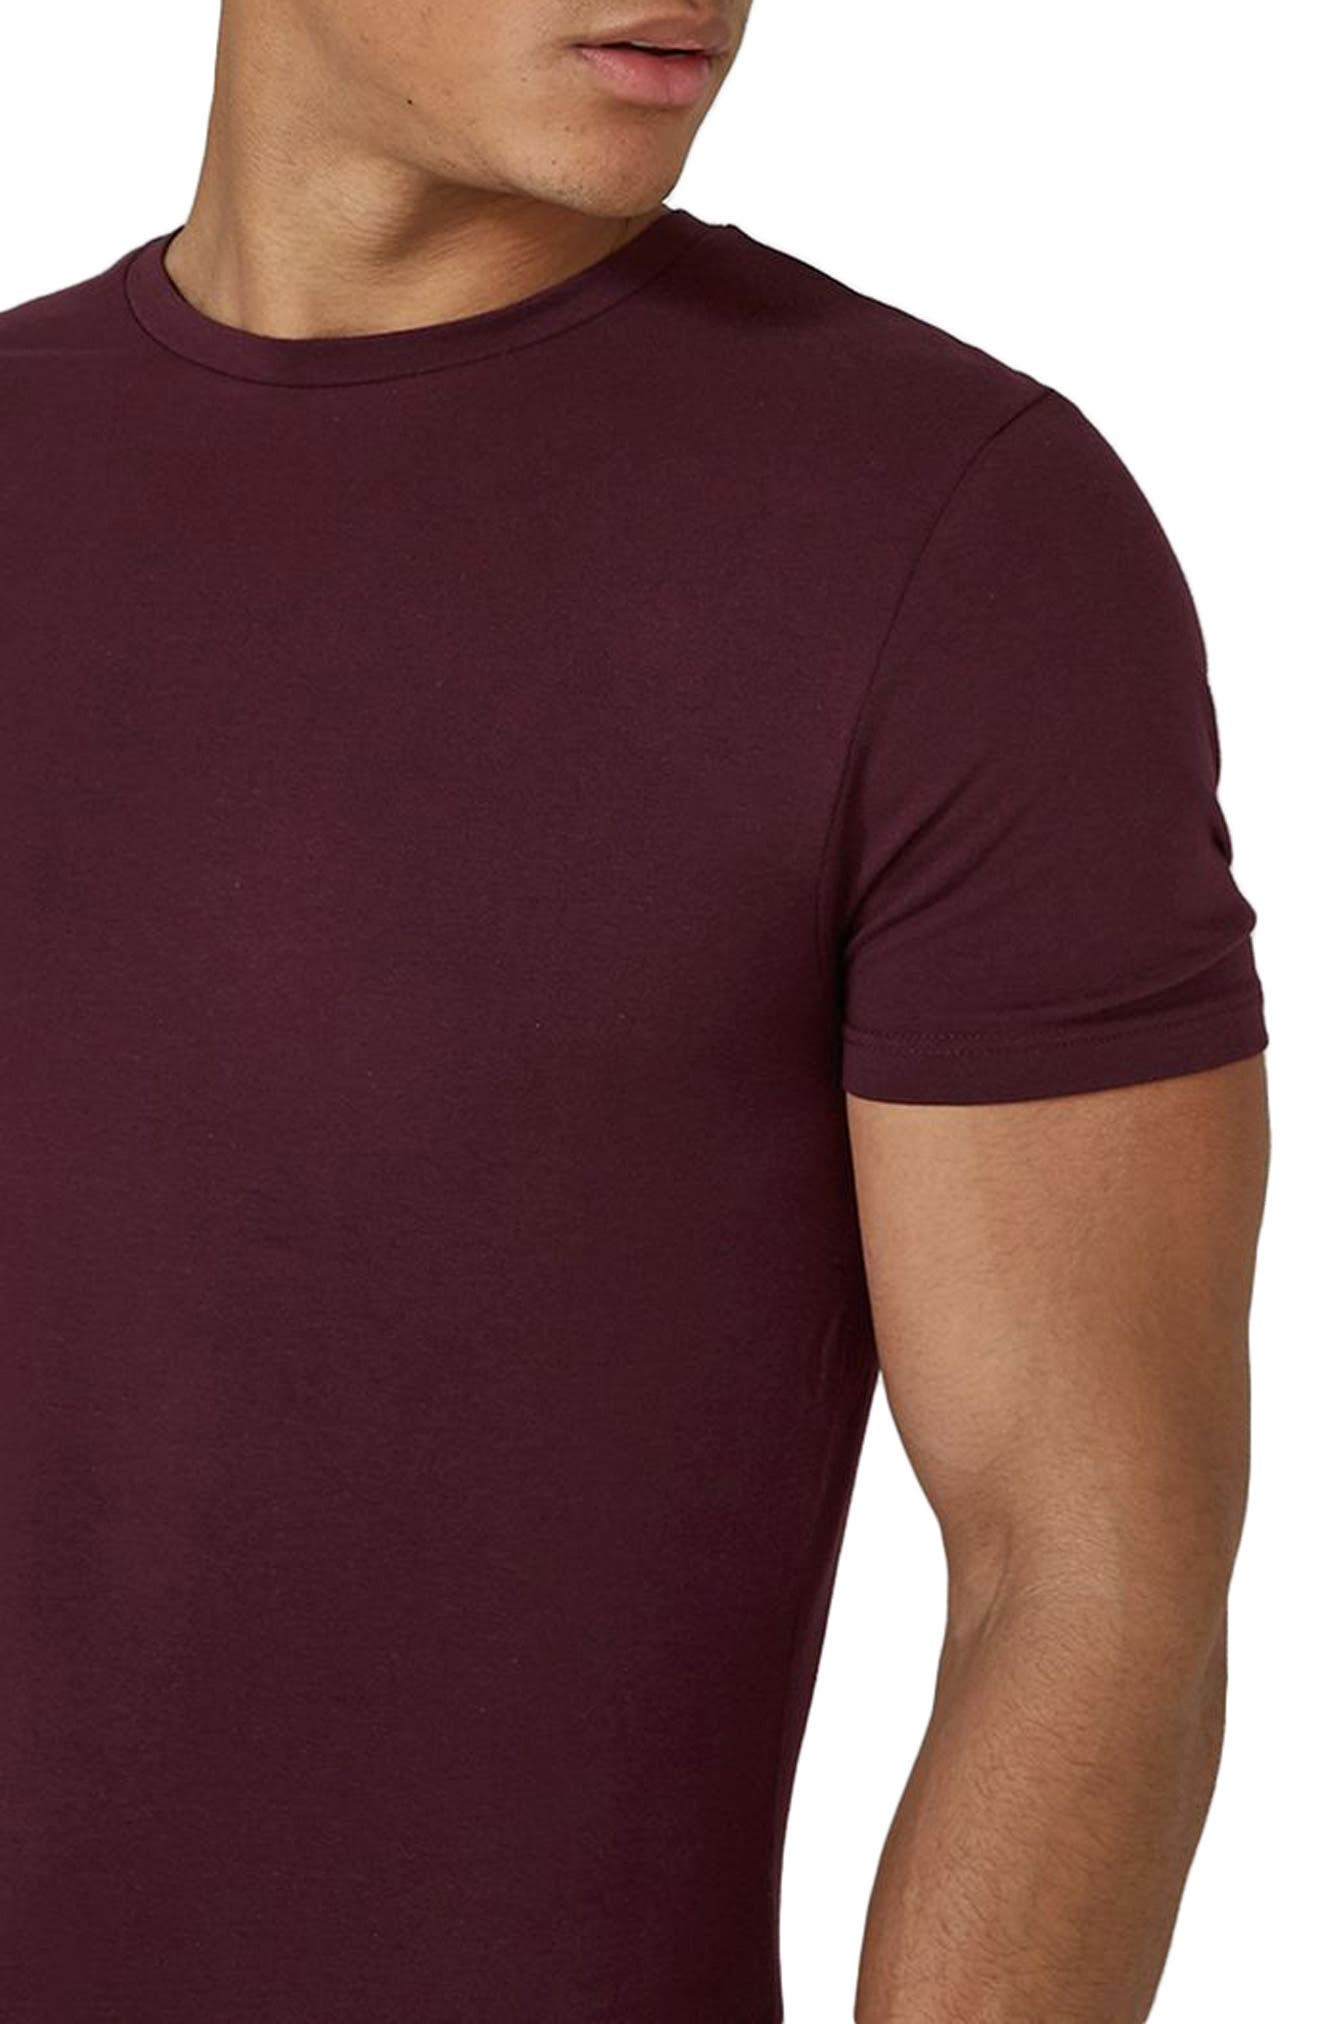 Ultra Muscle Fit T-Shirt,                             Alternate thumbnail 3, color,                             Burgundy